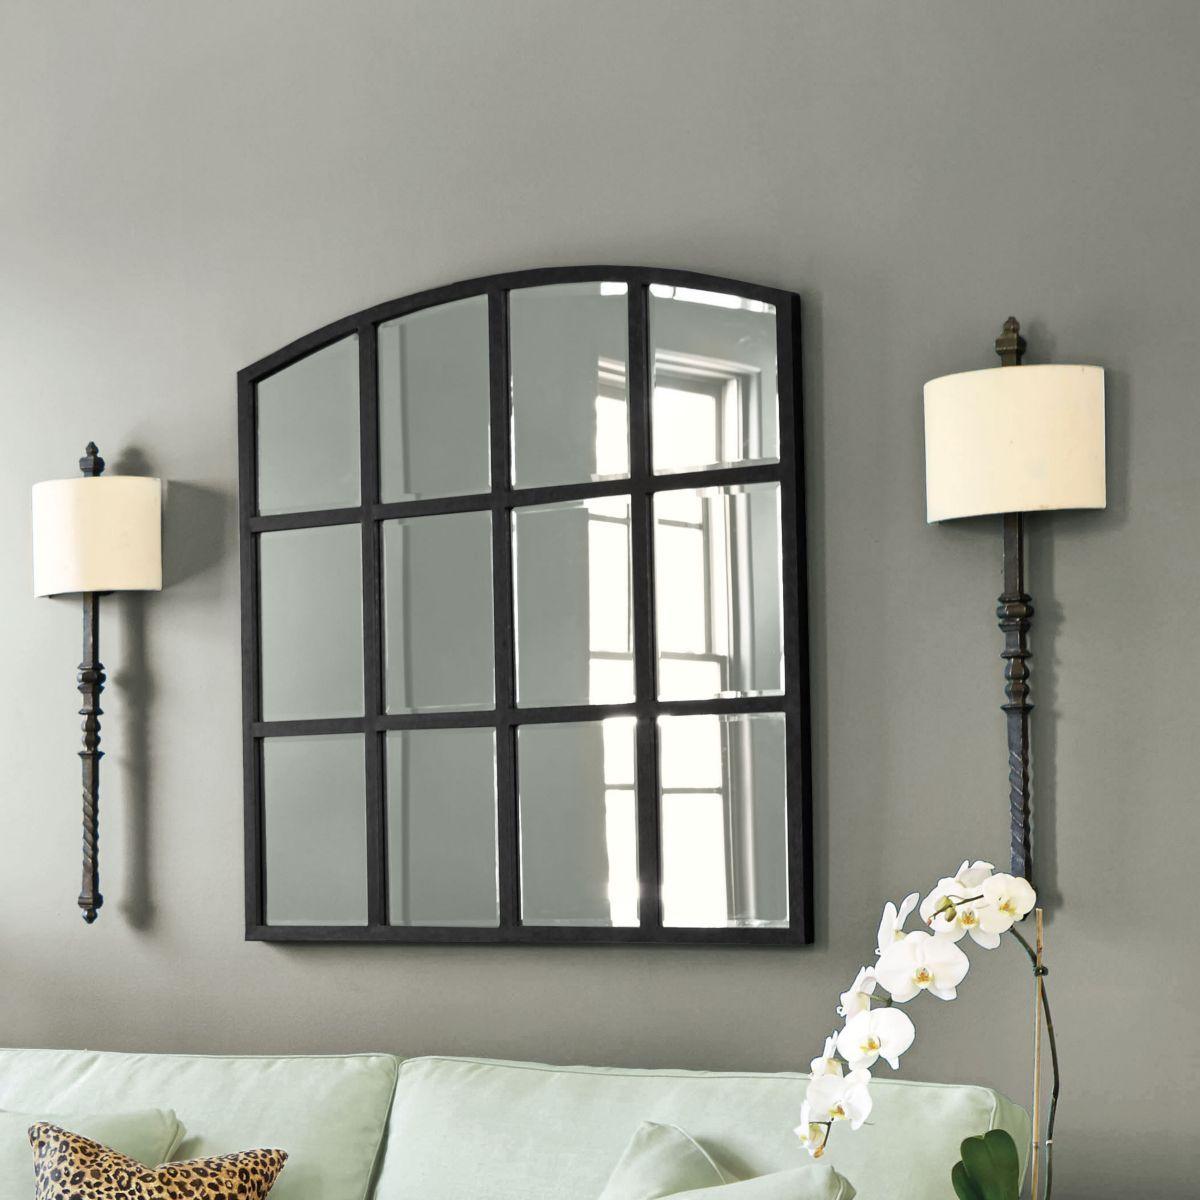 jill mirror home sweet home pinterest art niche room art search results for jill mirror ballard designs